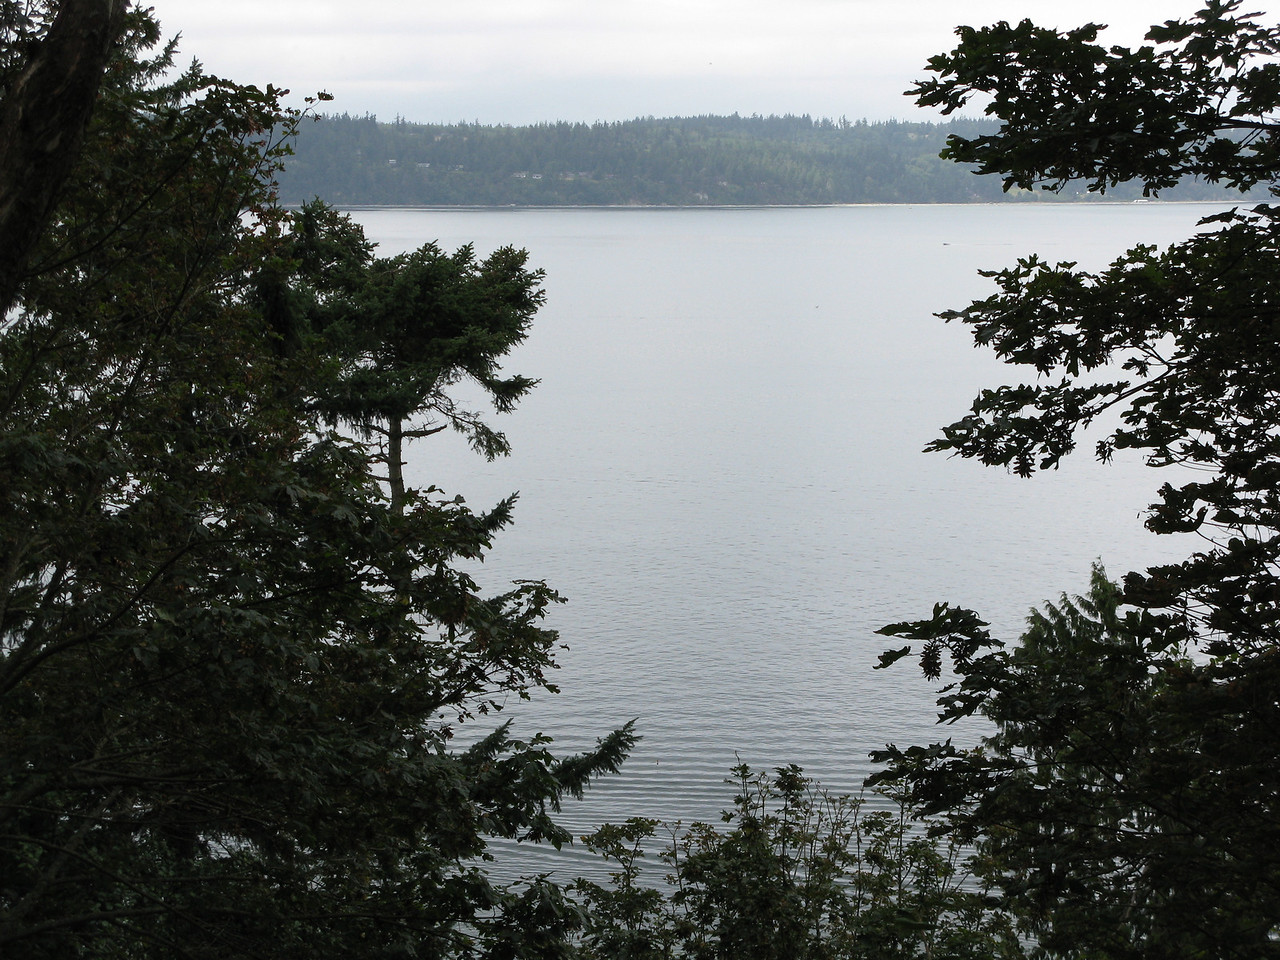 """We began hiking on the """"Bluff Trail"""" with occasional views like this one.  We are looking at the section of Puget Sound called Saratoga Passage, which sits between Whidbey Island (in the distance above) and Camano Island, on which we are standing."""